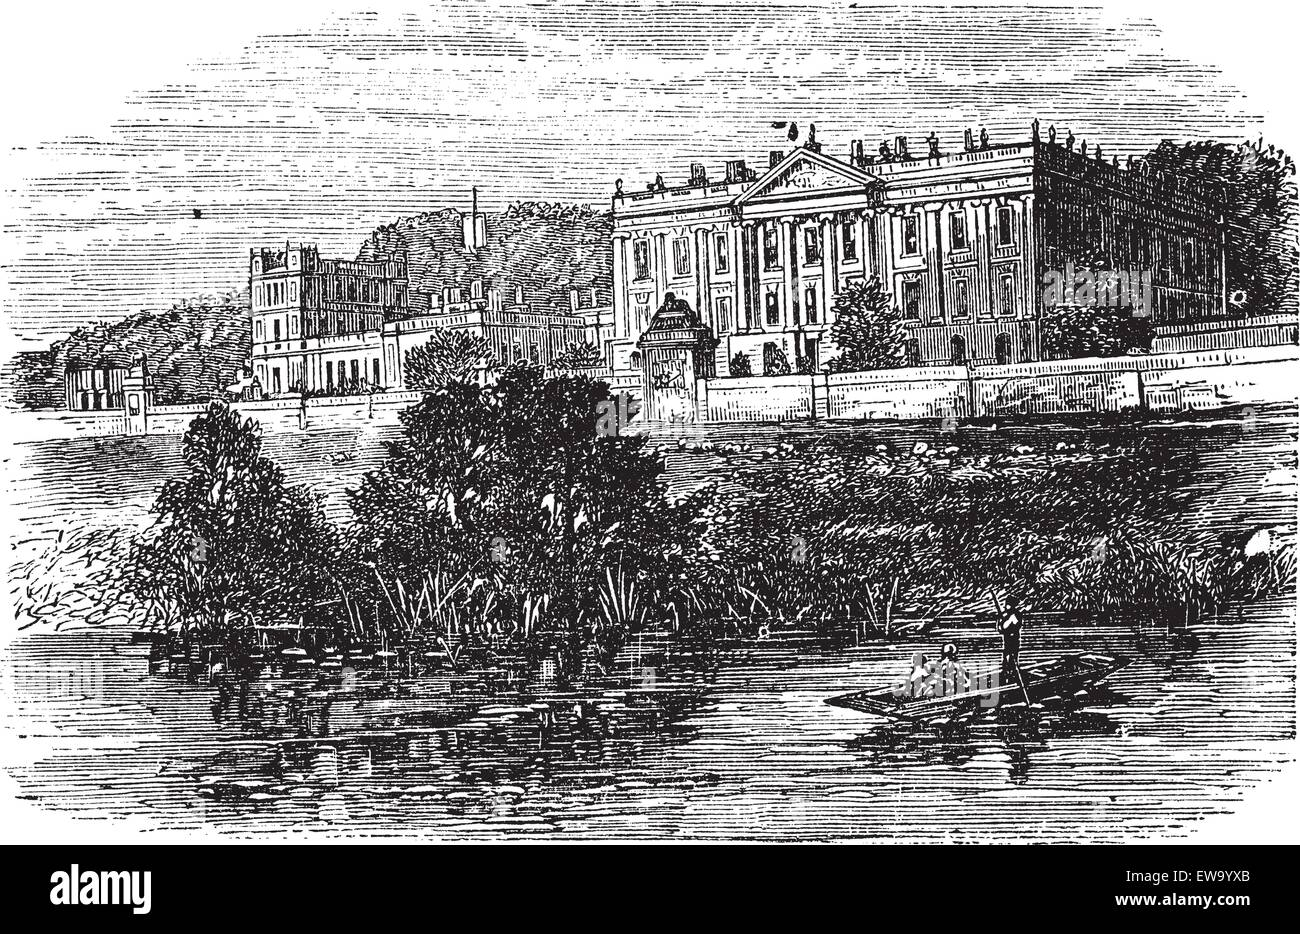 Cheltenham College, in Gloucestershire, United Kingdom, during the 1890s, vintage engraving. Old engraved illustration - Stock Vector